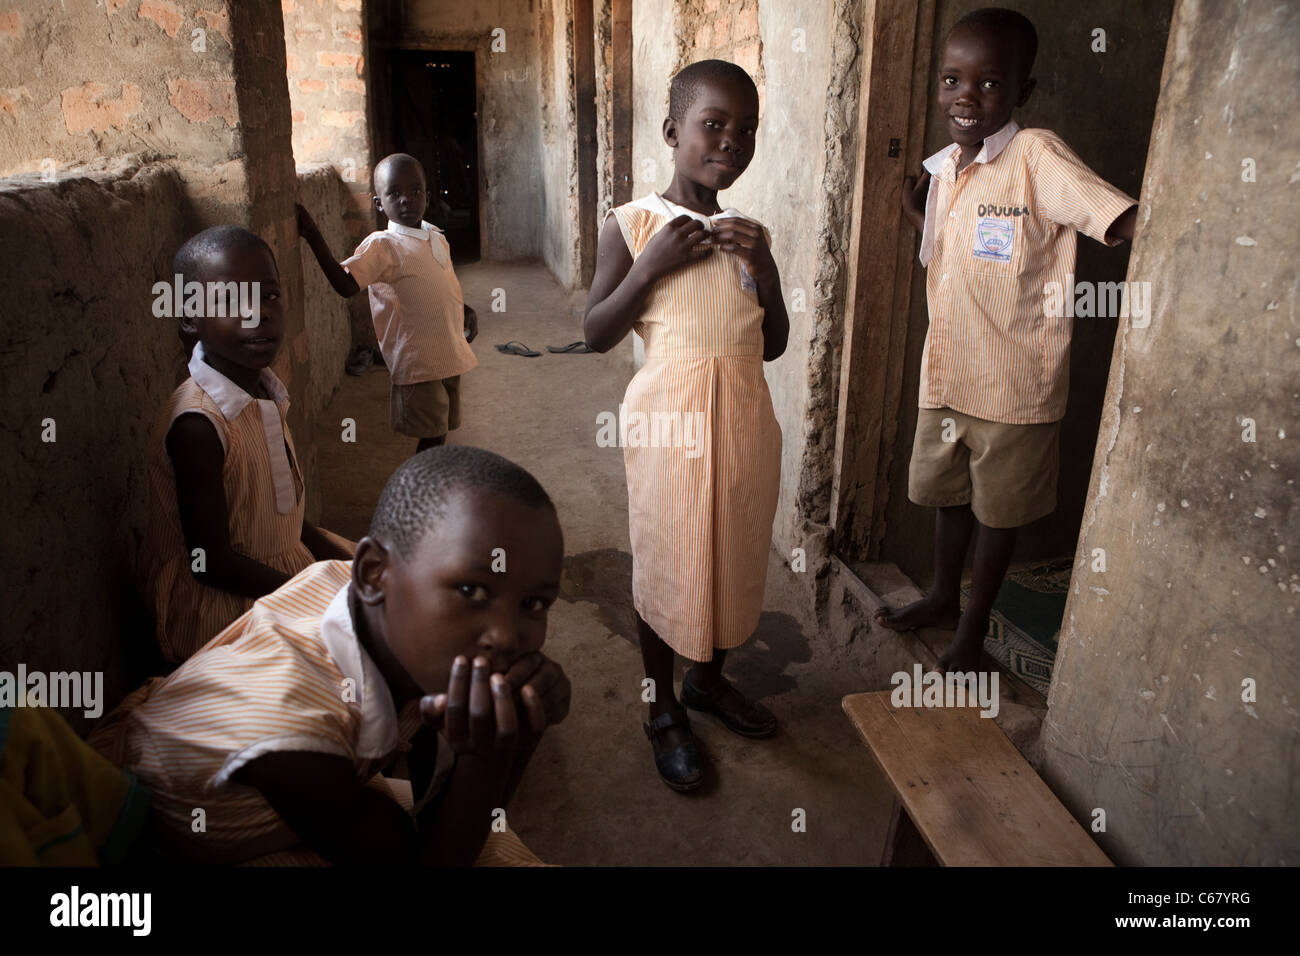 School students sit in the hallway of a school in Amuria, Uganda, East Africa. - Stock Image